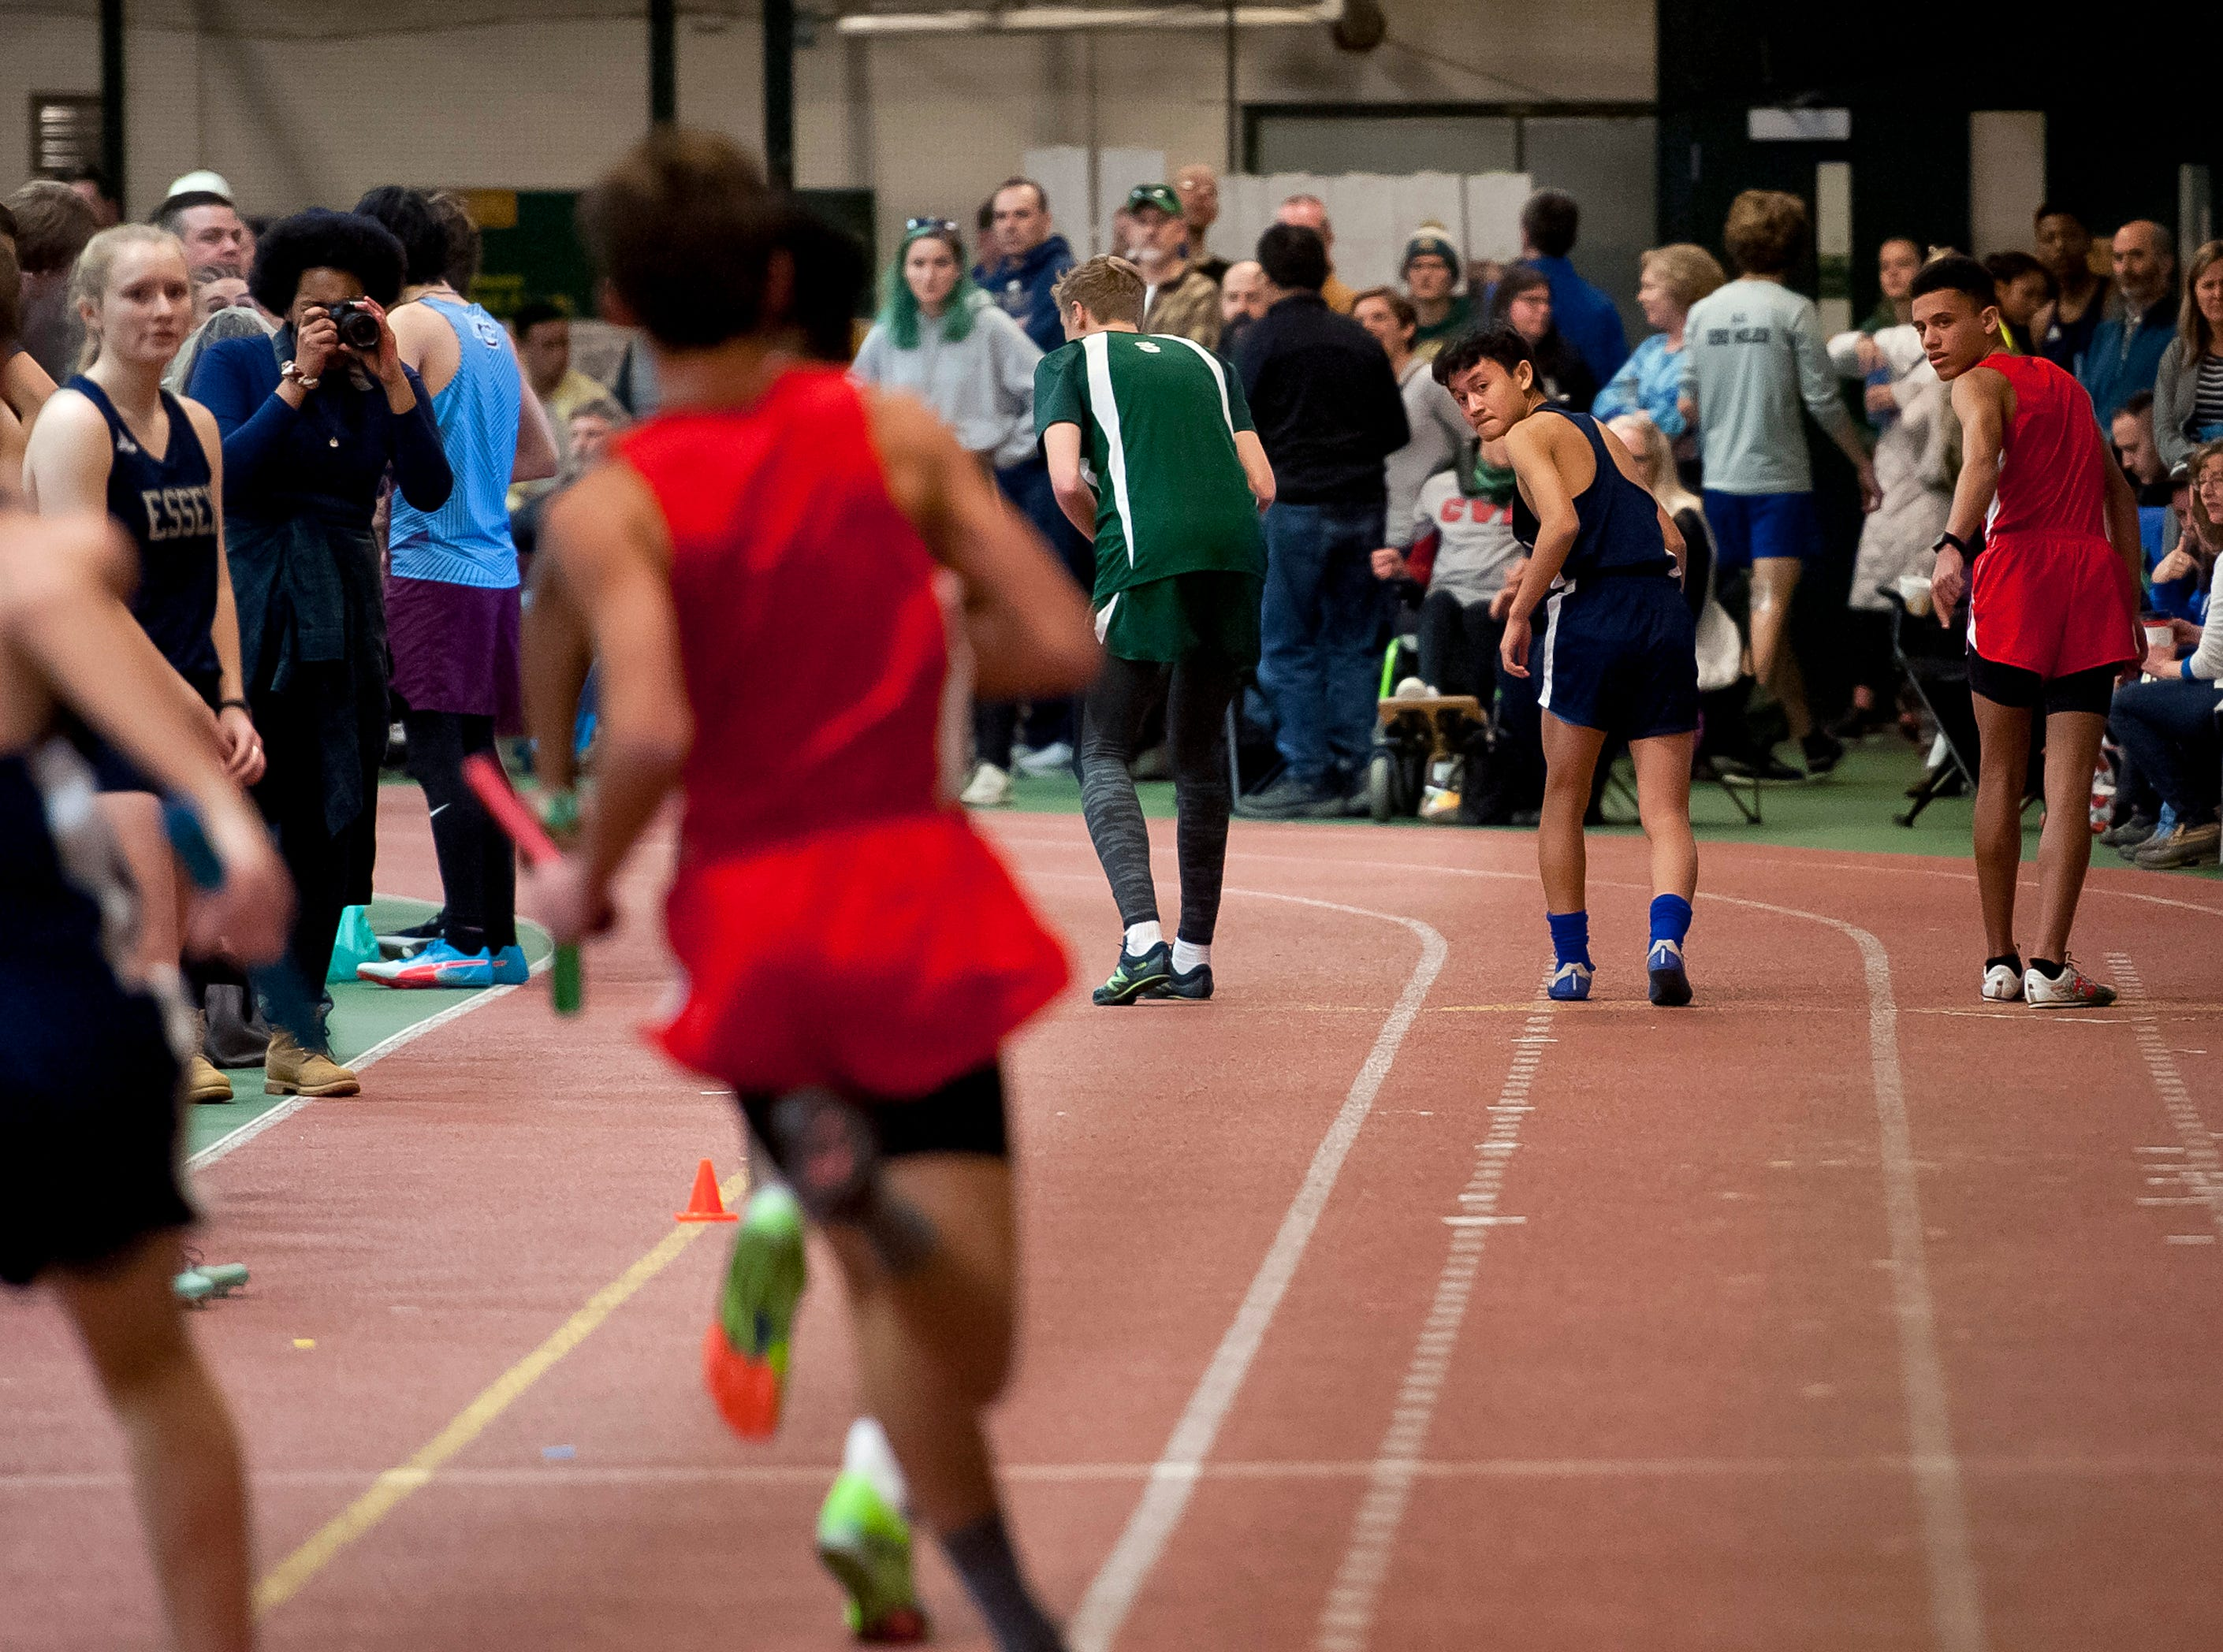 Runners look back for the baton handoff in the boys 4x200 meter relay at the high school indoor track state championships at the University of Vermont on Saturday.